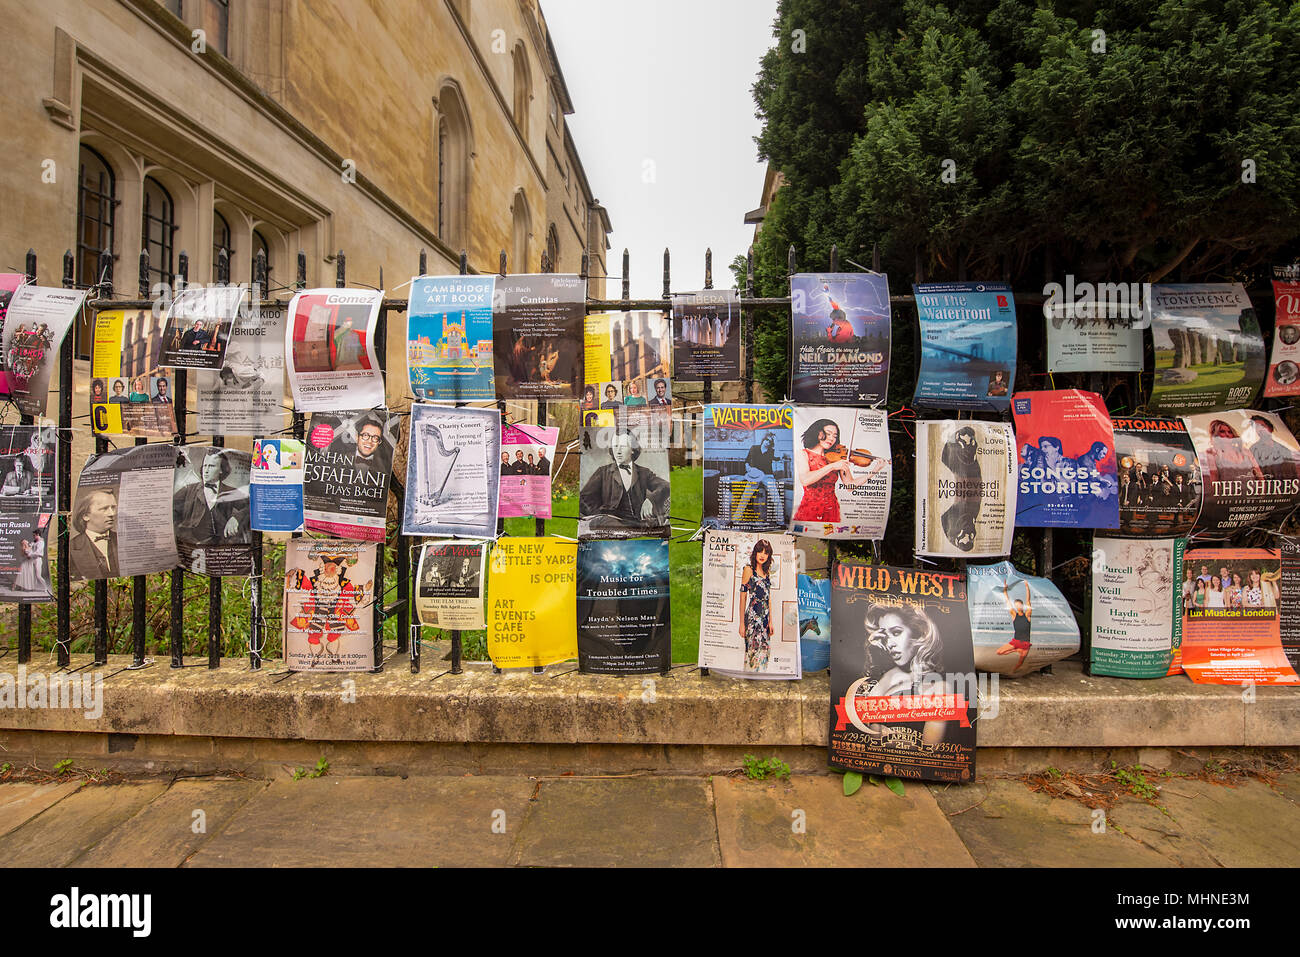 An iron railing fence covered in colourful flyers and posters promoting concerts and performances. A common sight in Cambridge, UK. - Stock Image